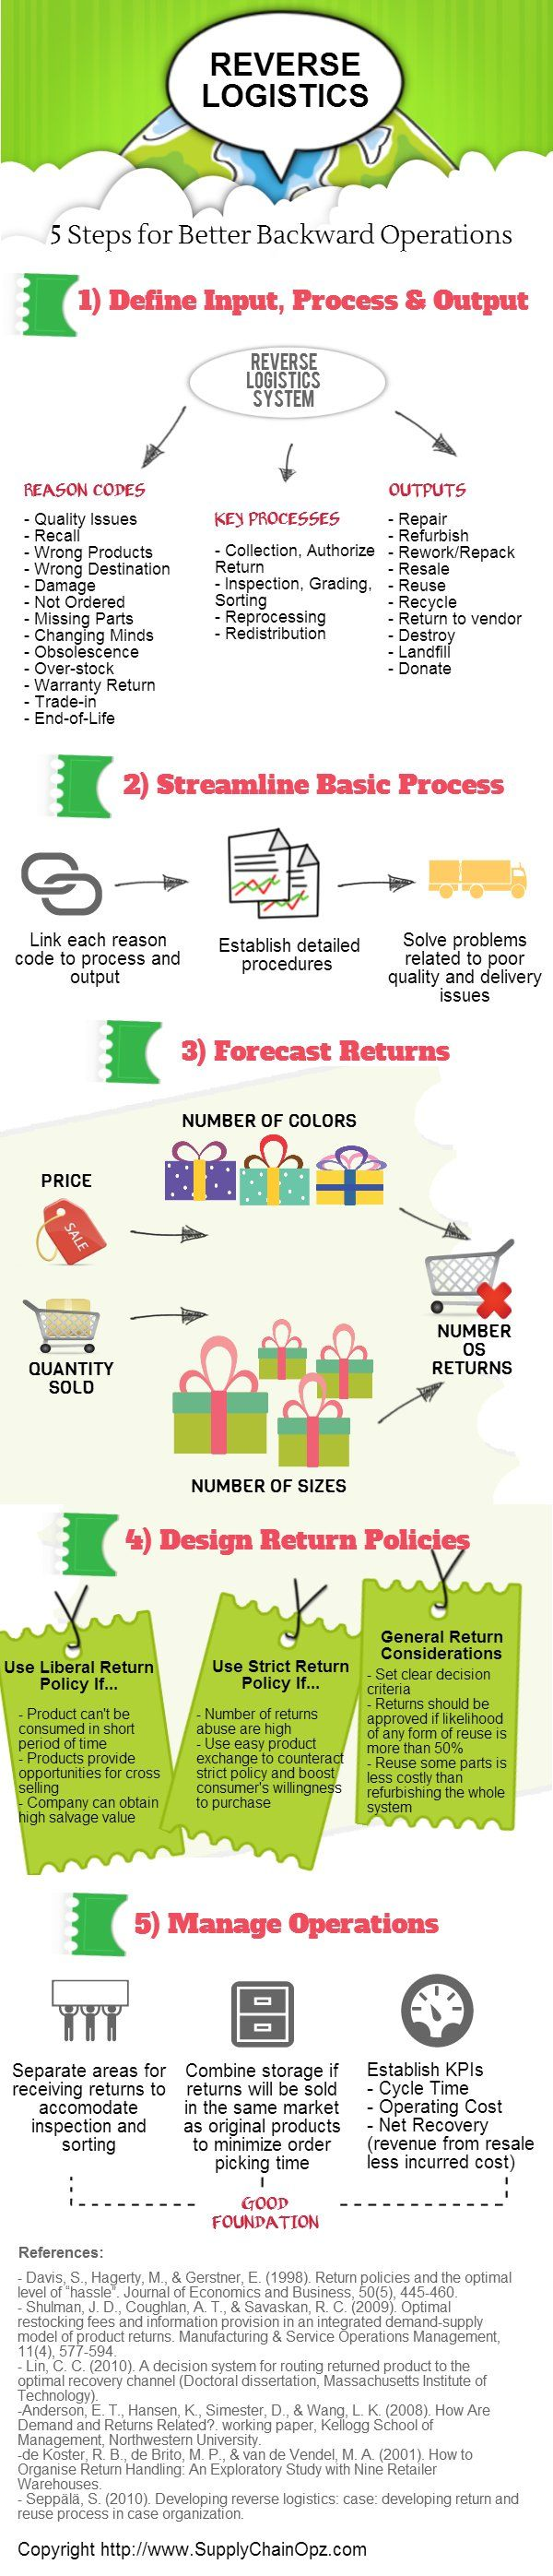 What is reverse logistics? Why it's important in modern business and how to create improvement in this area? This article will explain to you the current state of its theories, practices and offer some recommendations.